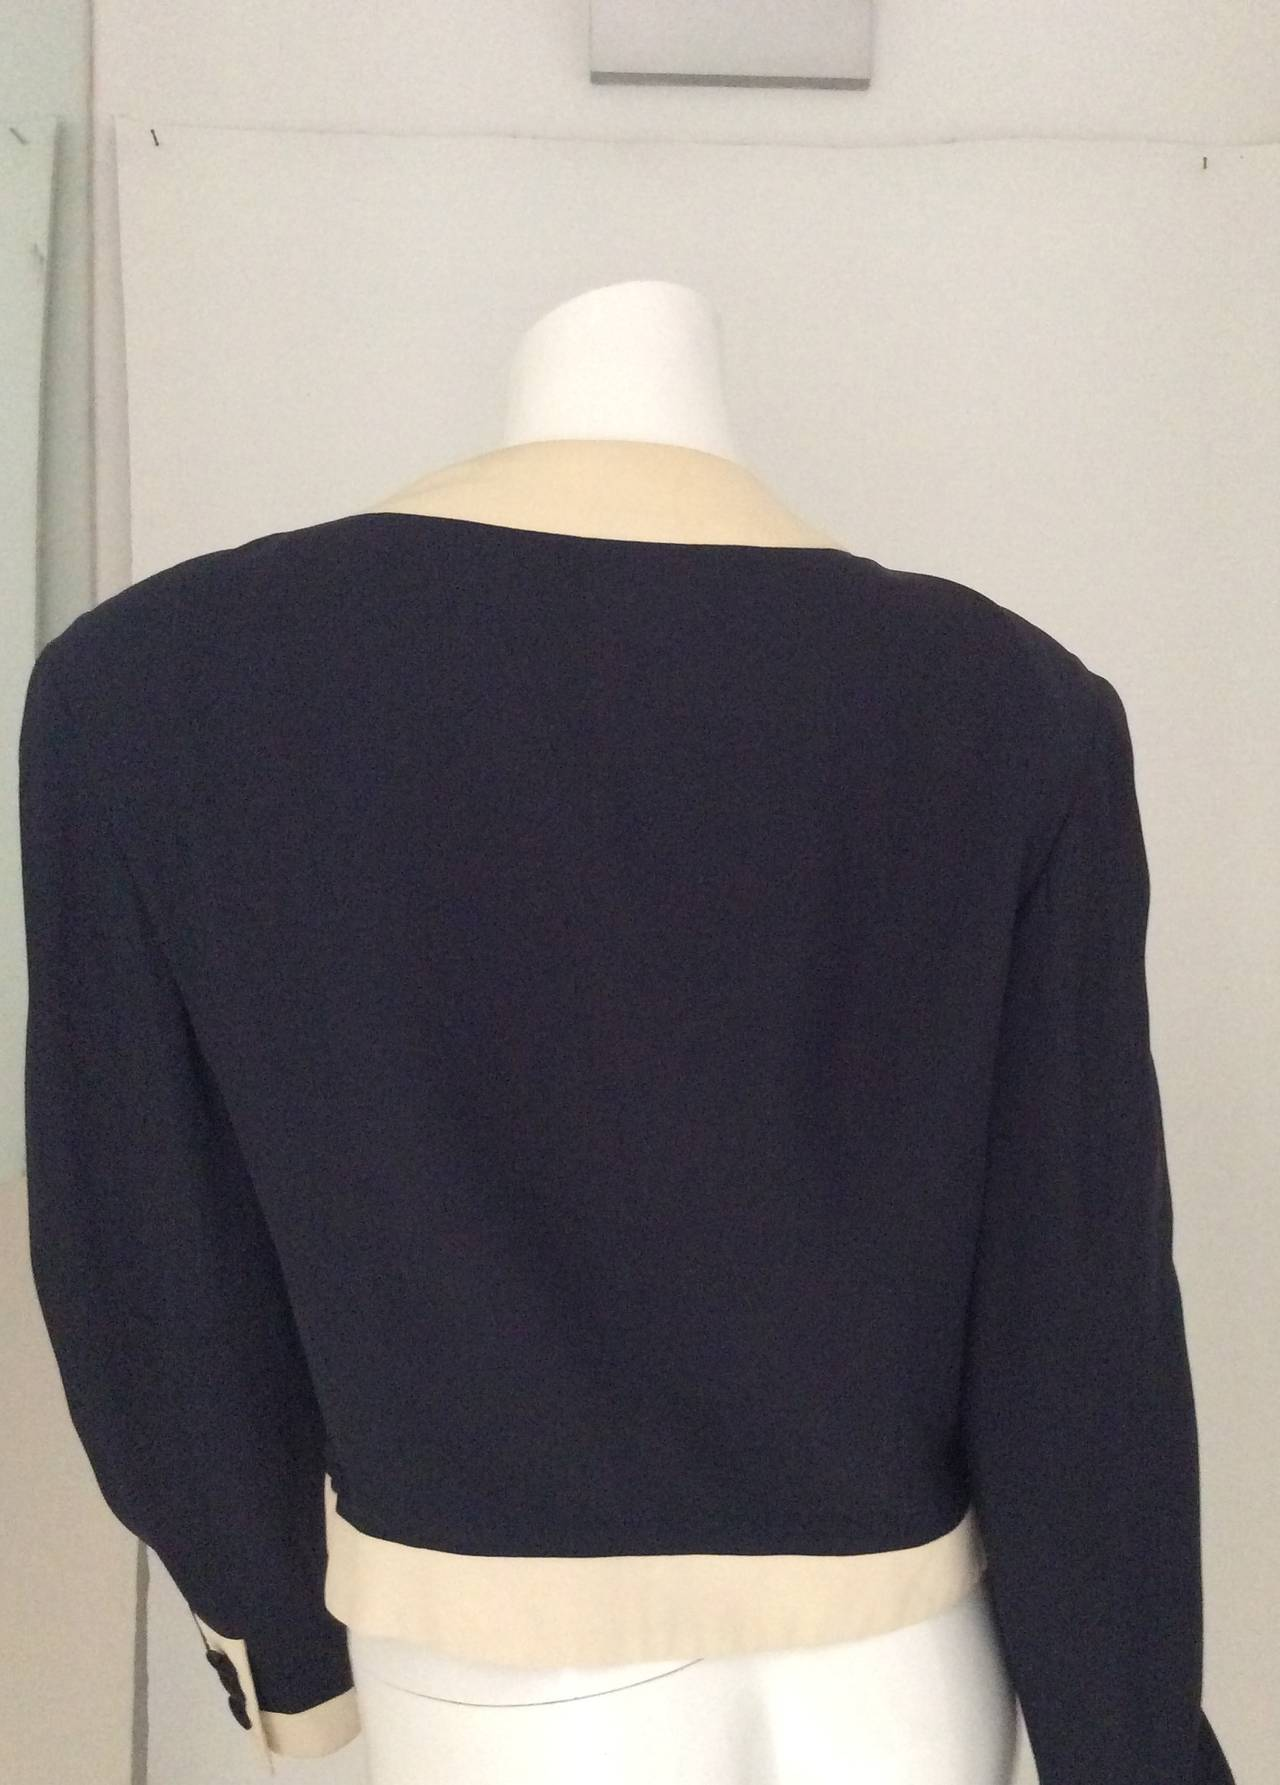 Moschino Couture Jacket - Navy and White - Early to mid 90's For Sale 3